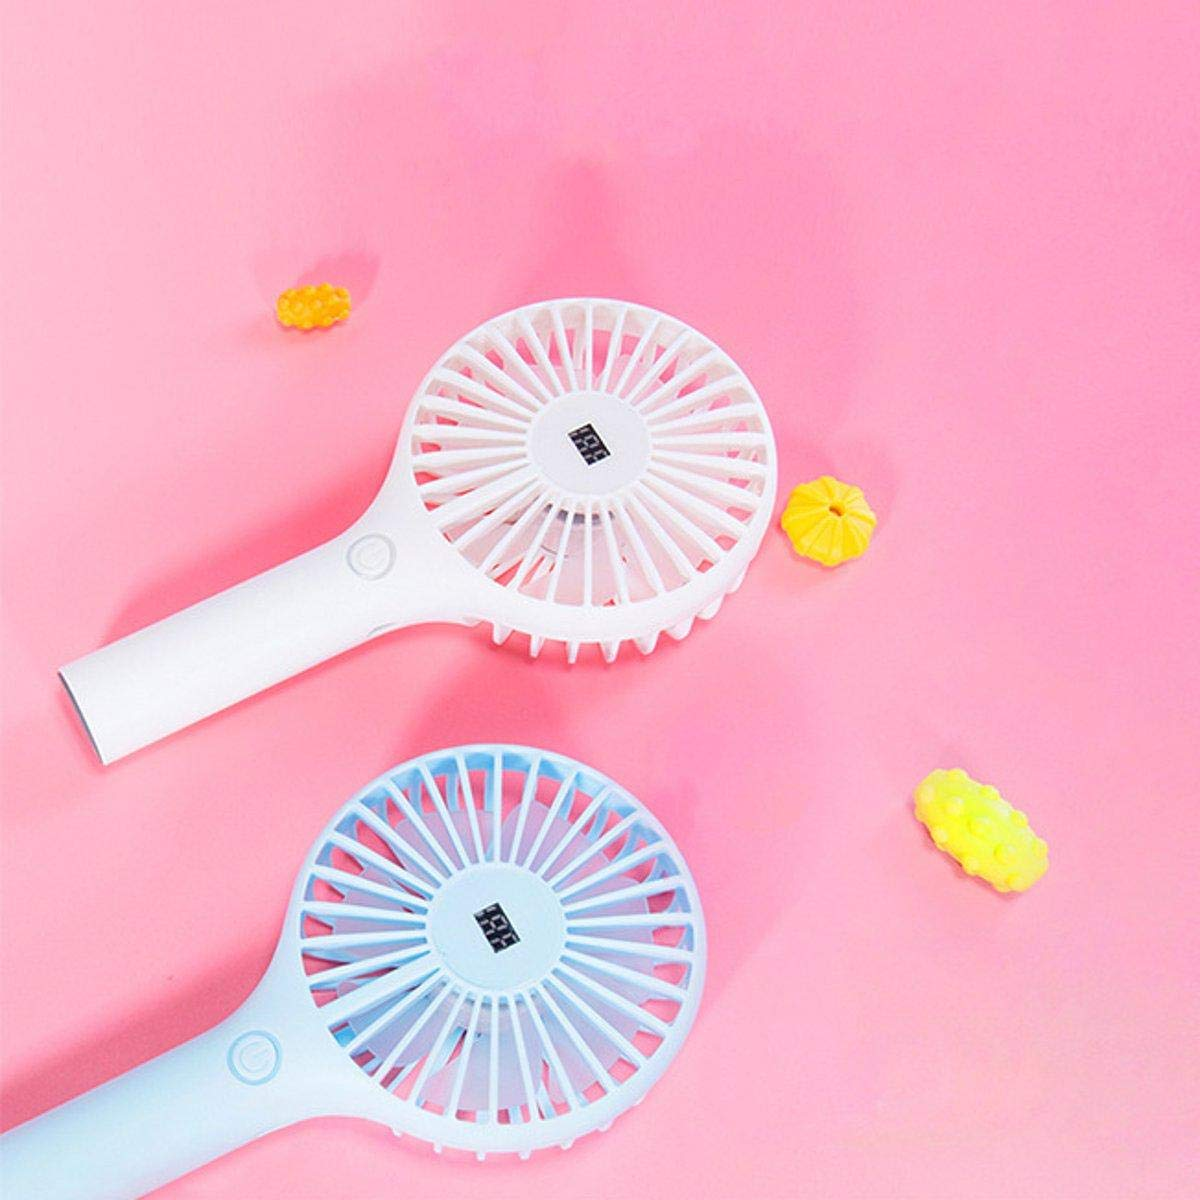 F.S.M. Portable Mini Handheld USB Cooling Desk Fan Outdoor Rechargeable Air Wind Cooler - White by F.S.M.